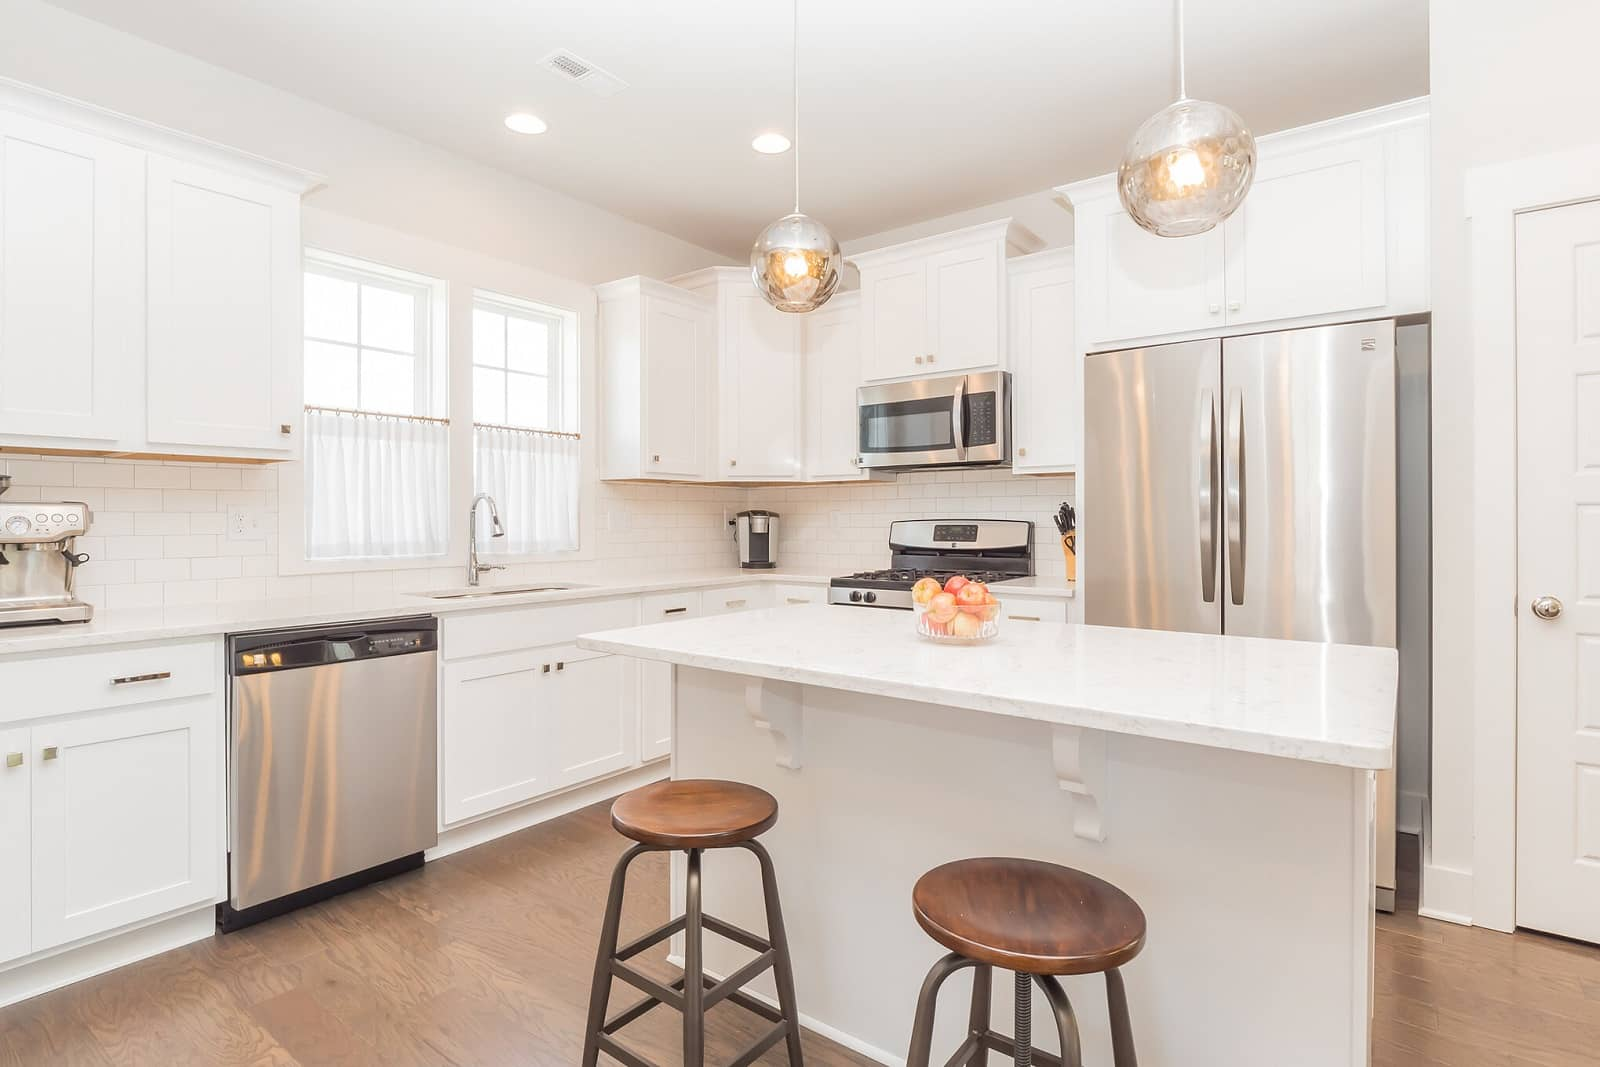 Real Estate Photography in Chapel Hill - NC - USA - Kitchen View